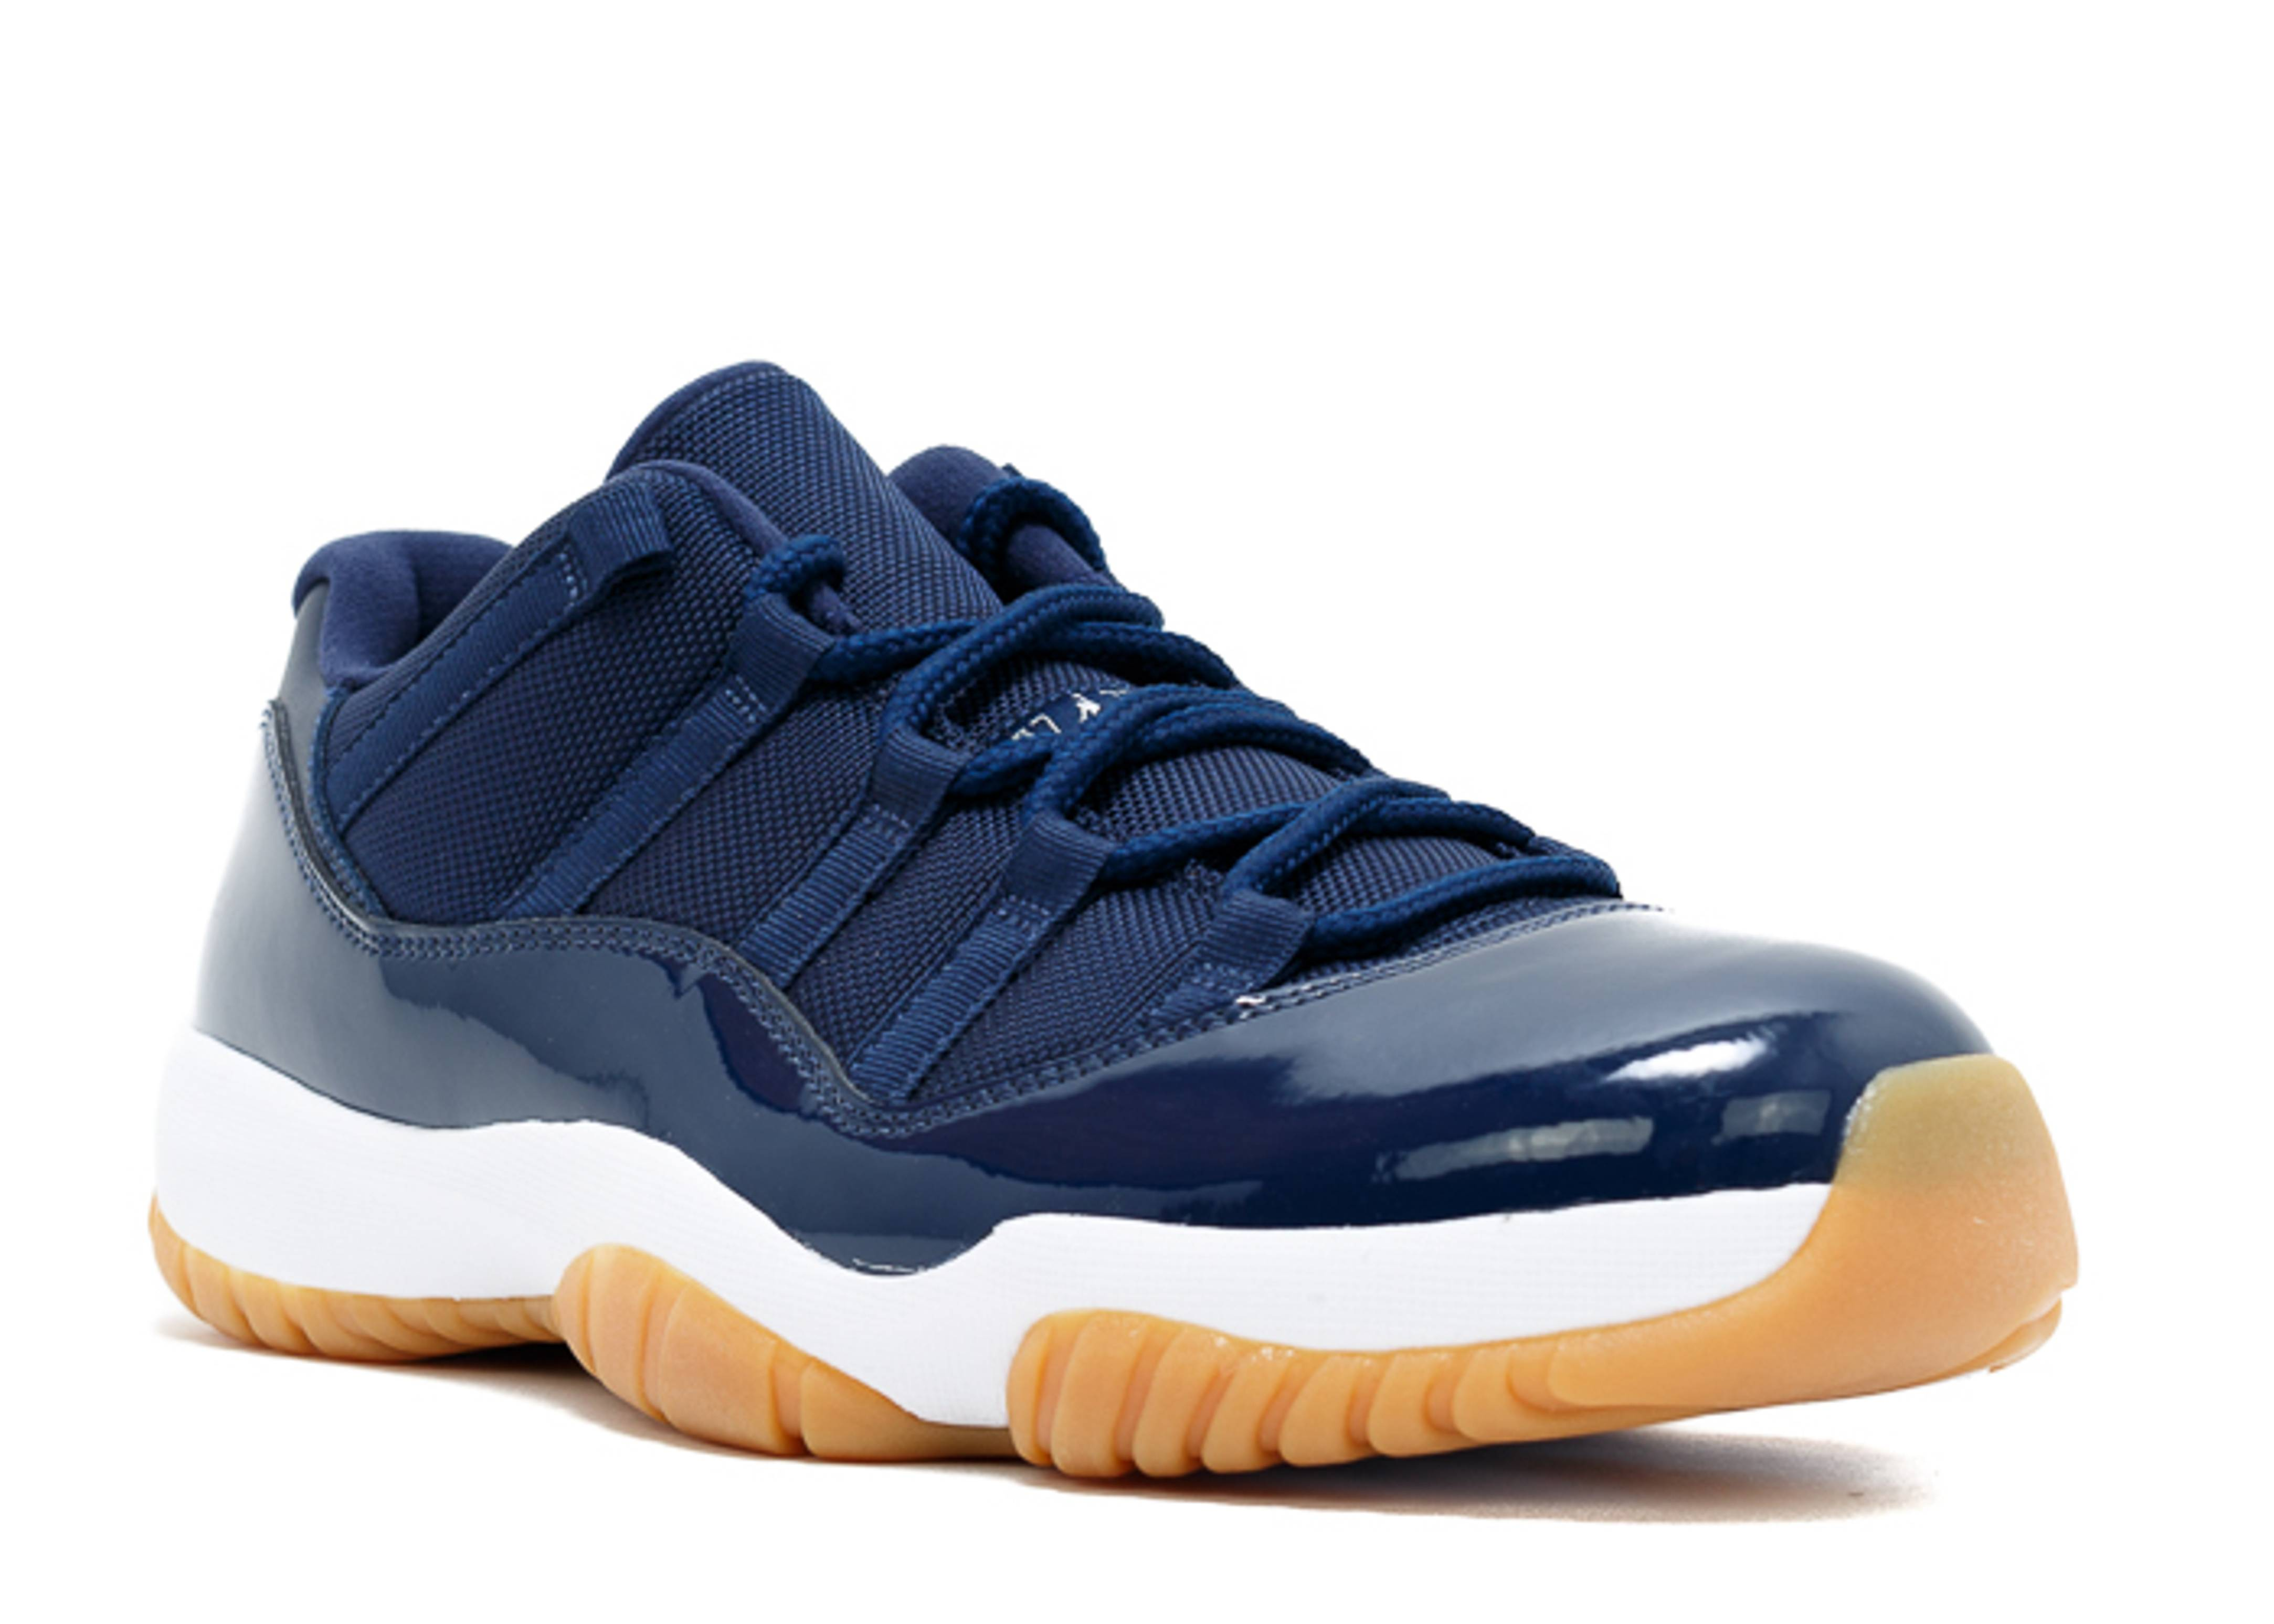 air jordan 11 low navy